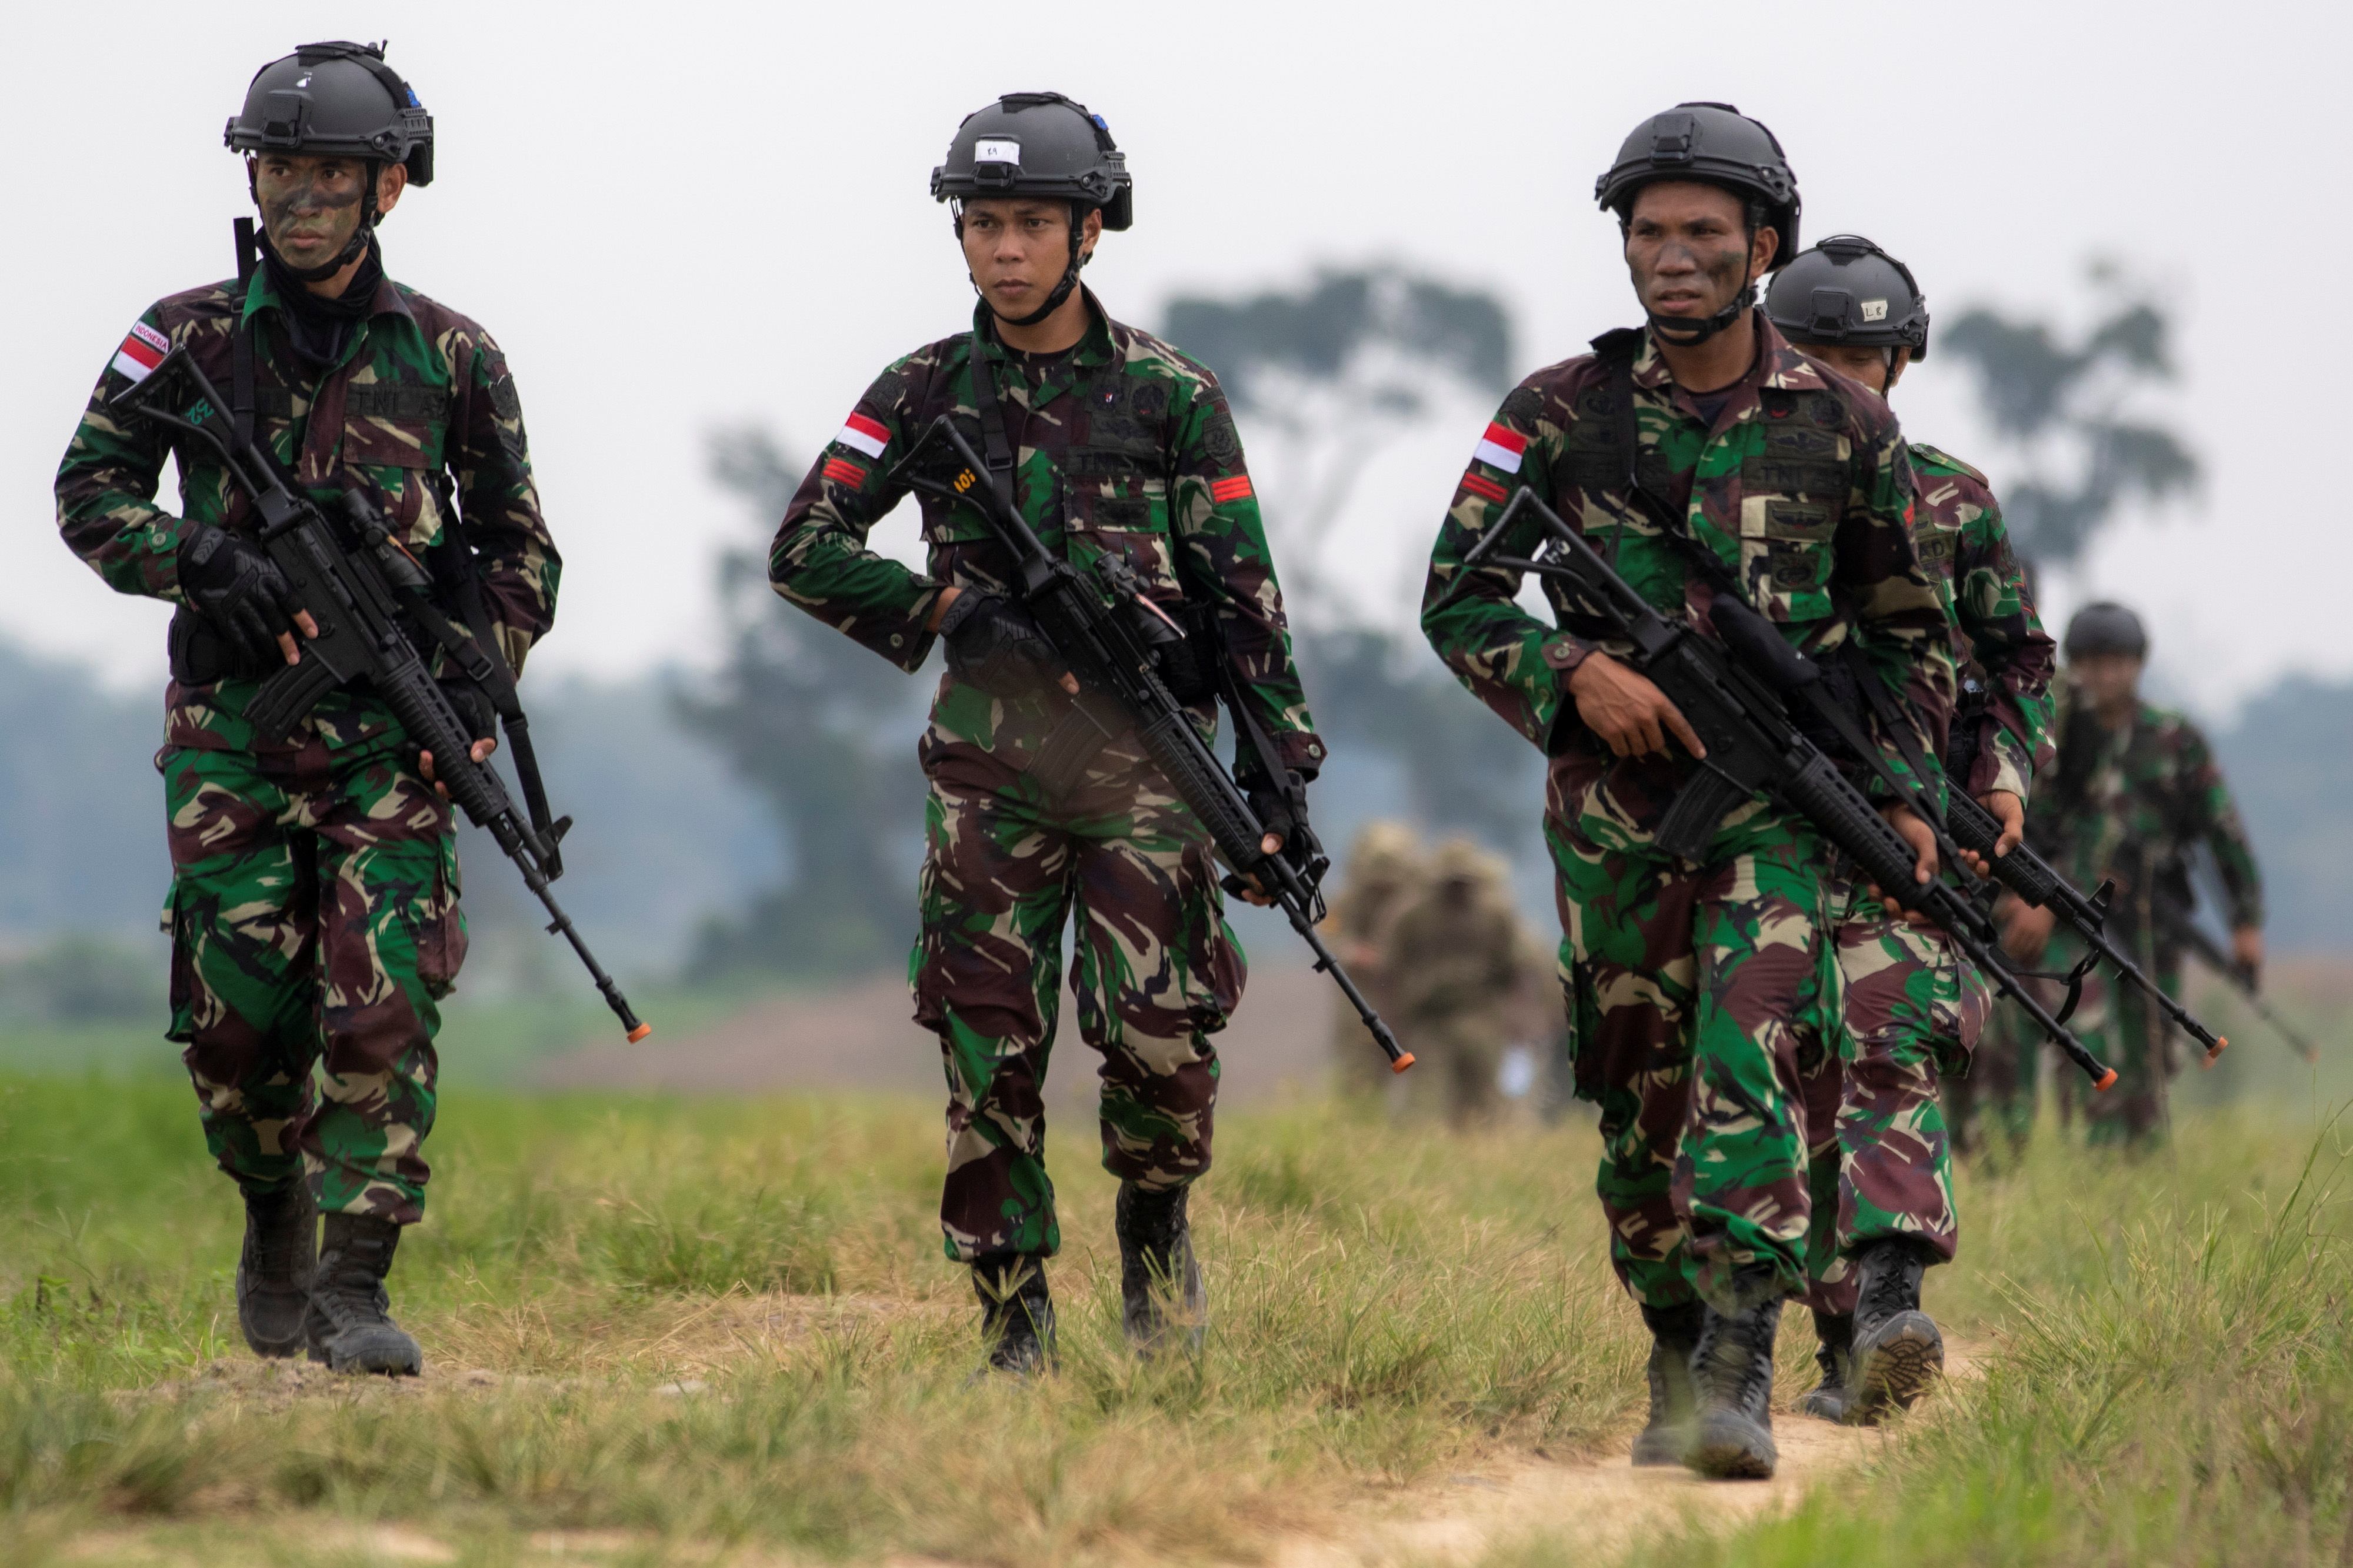 Indonesian army soldiers take part in Garuda Shield Joint Exercise 2021 at the Indonesian Army Combat Training Center in Martapura, South Sumatra province, Indonesia August 4, 2021. Antara Foto/Nova Wahyudi/via Reuters.